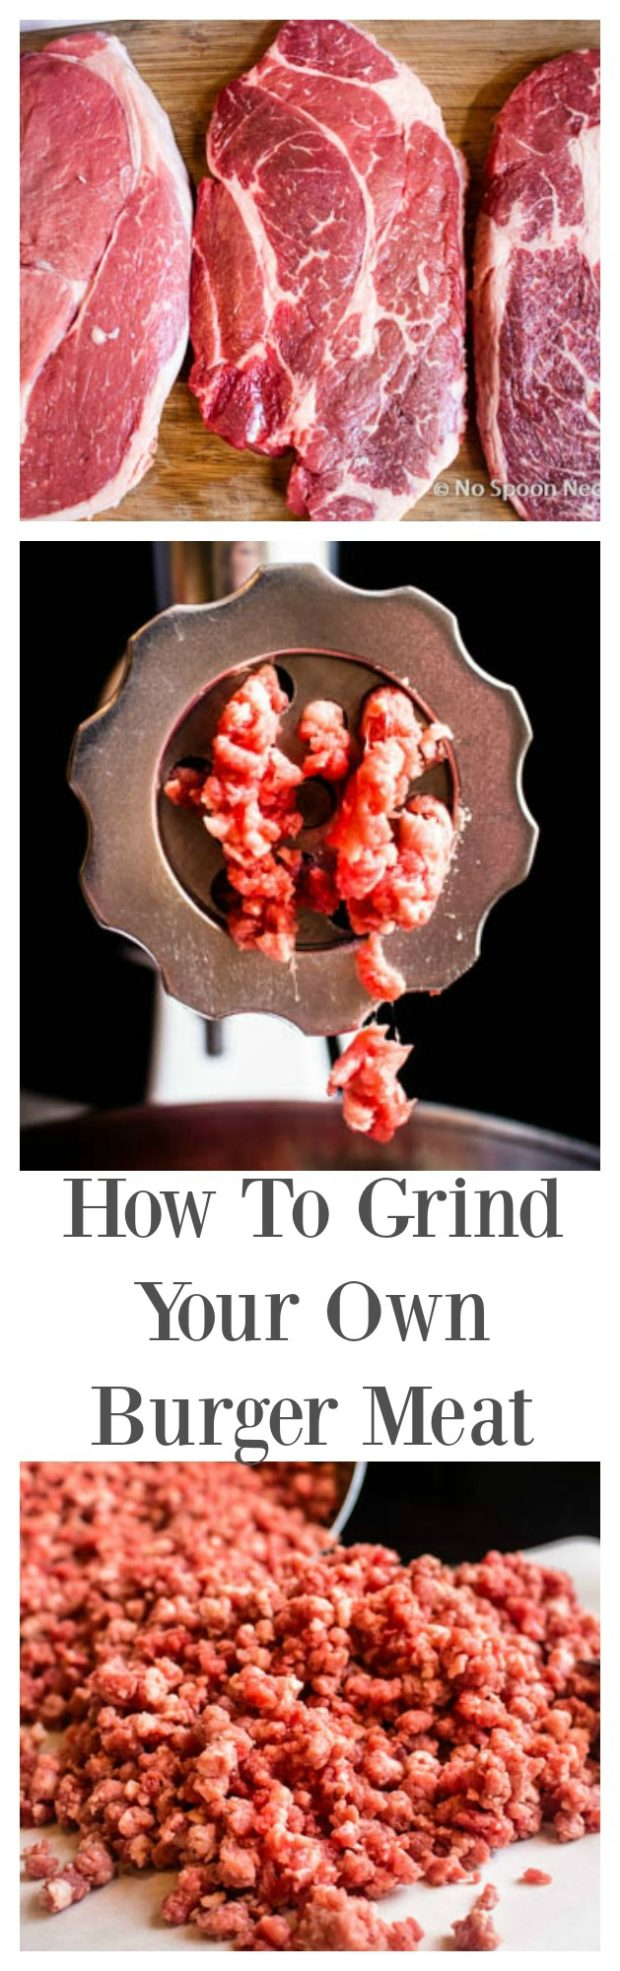 How To Grind Your Own Burger Meat